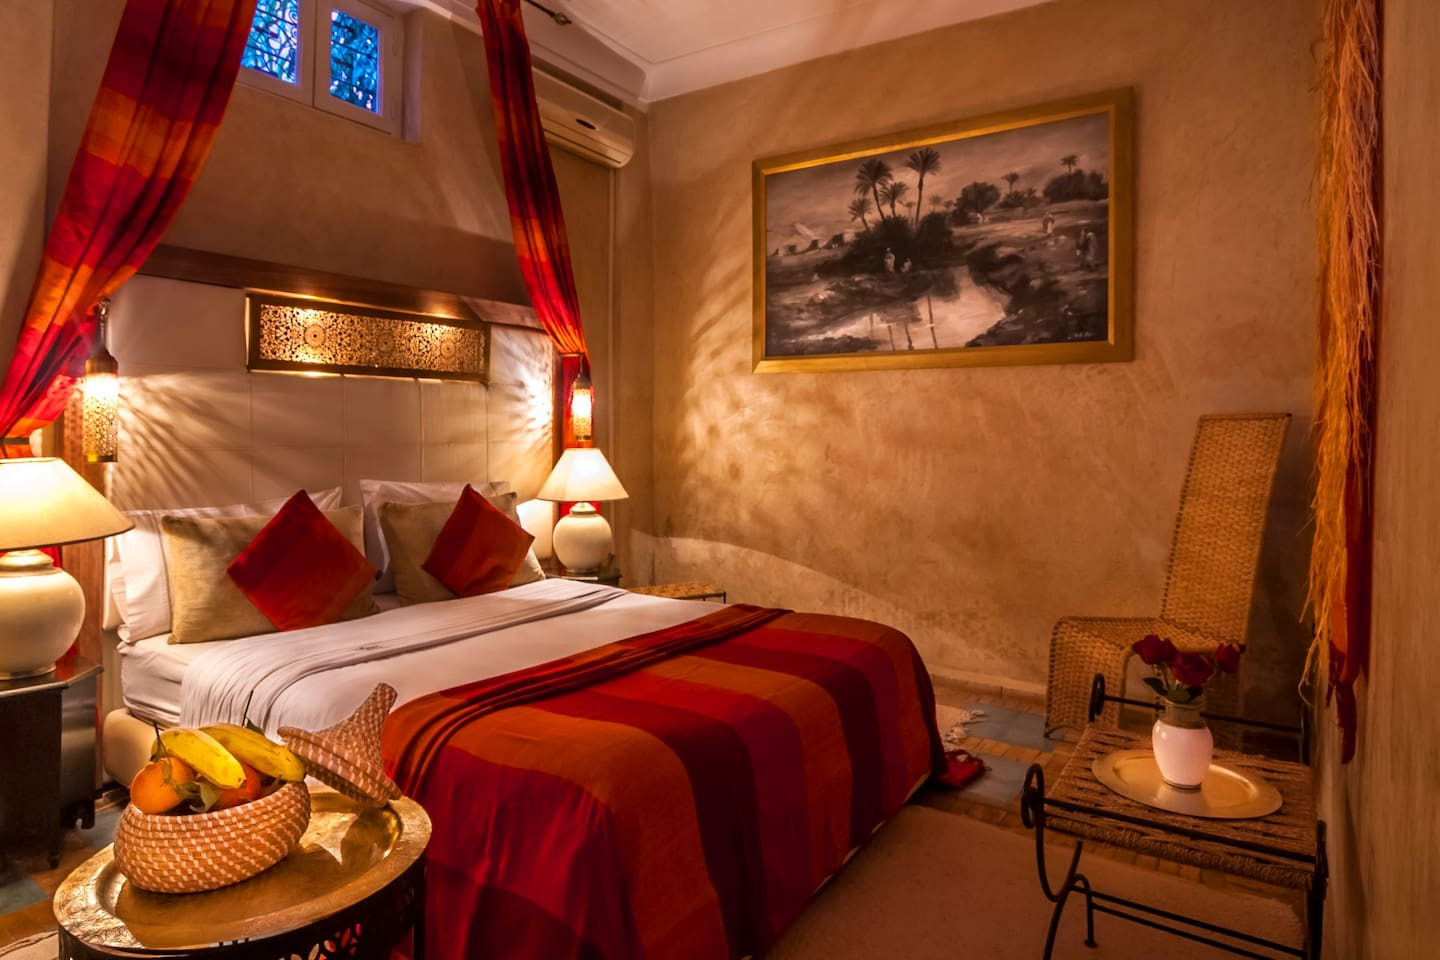 Riad: The sweet Datte room